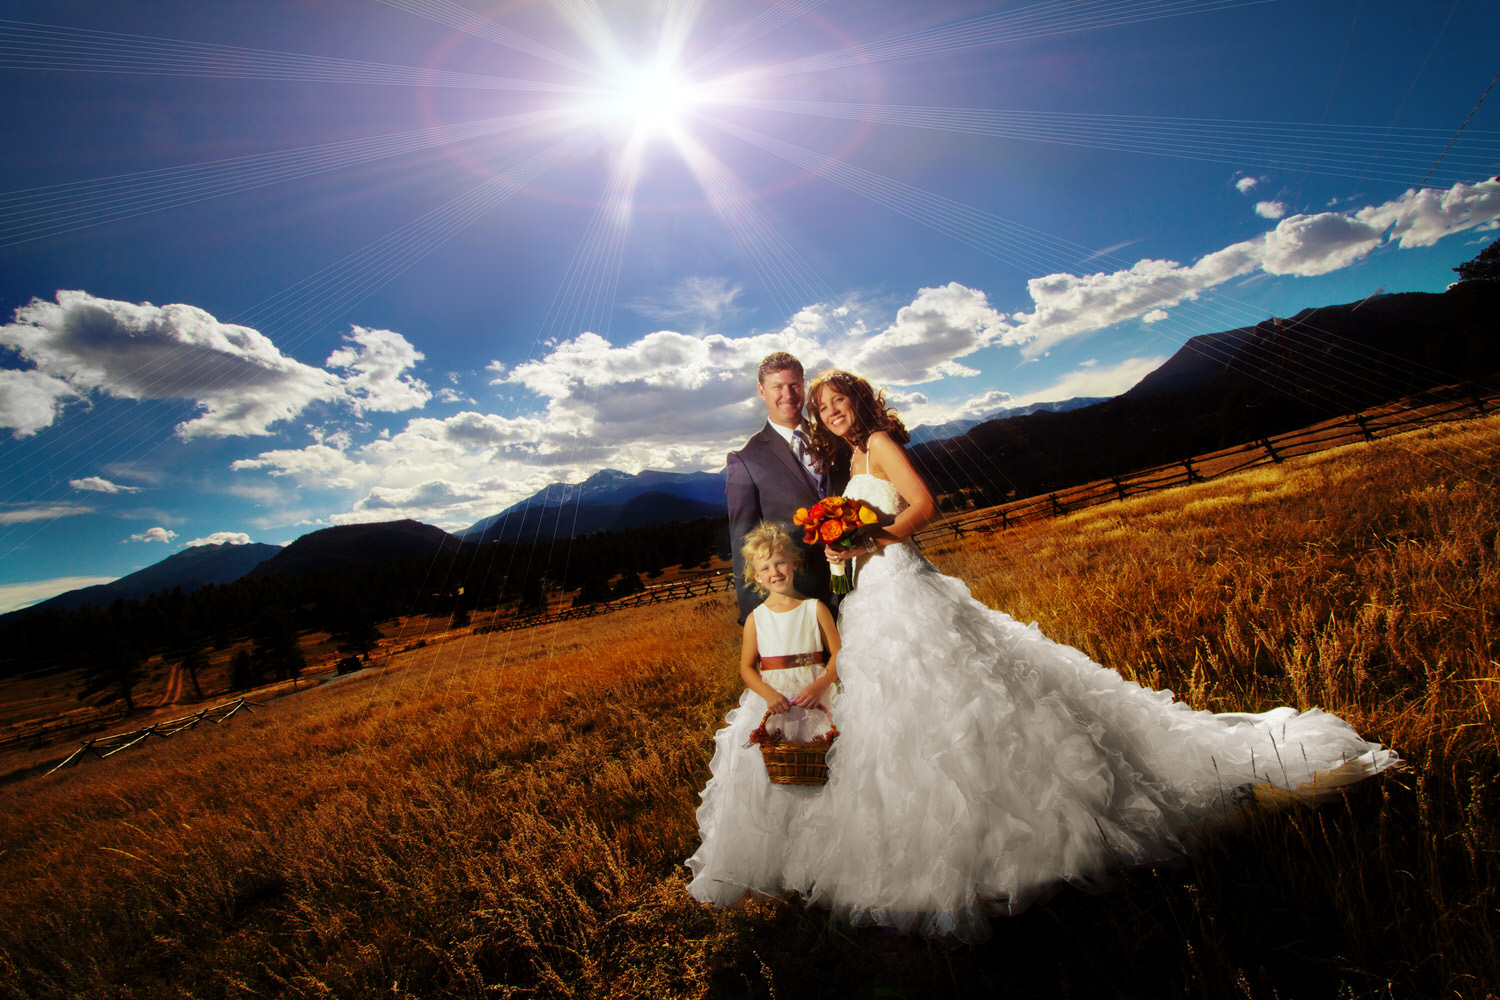 estes-park-wedding-photographer-tomKphoto-079.jpg